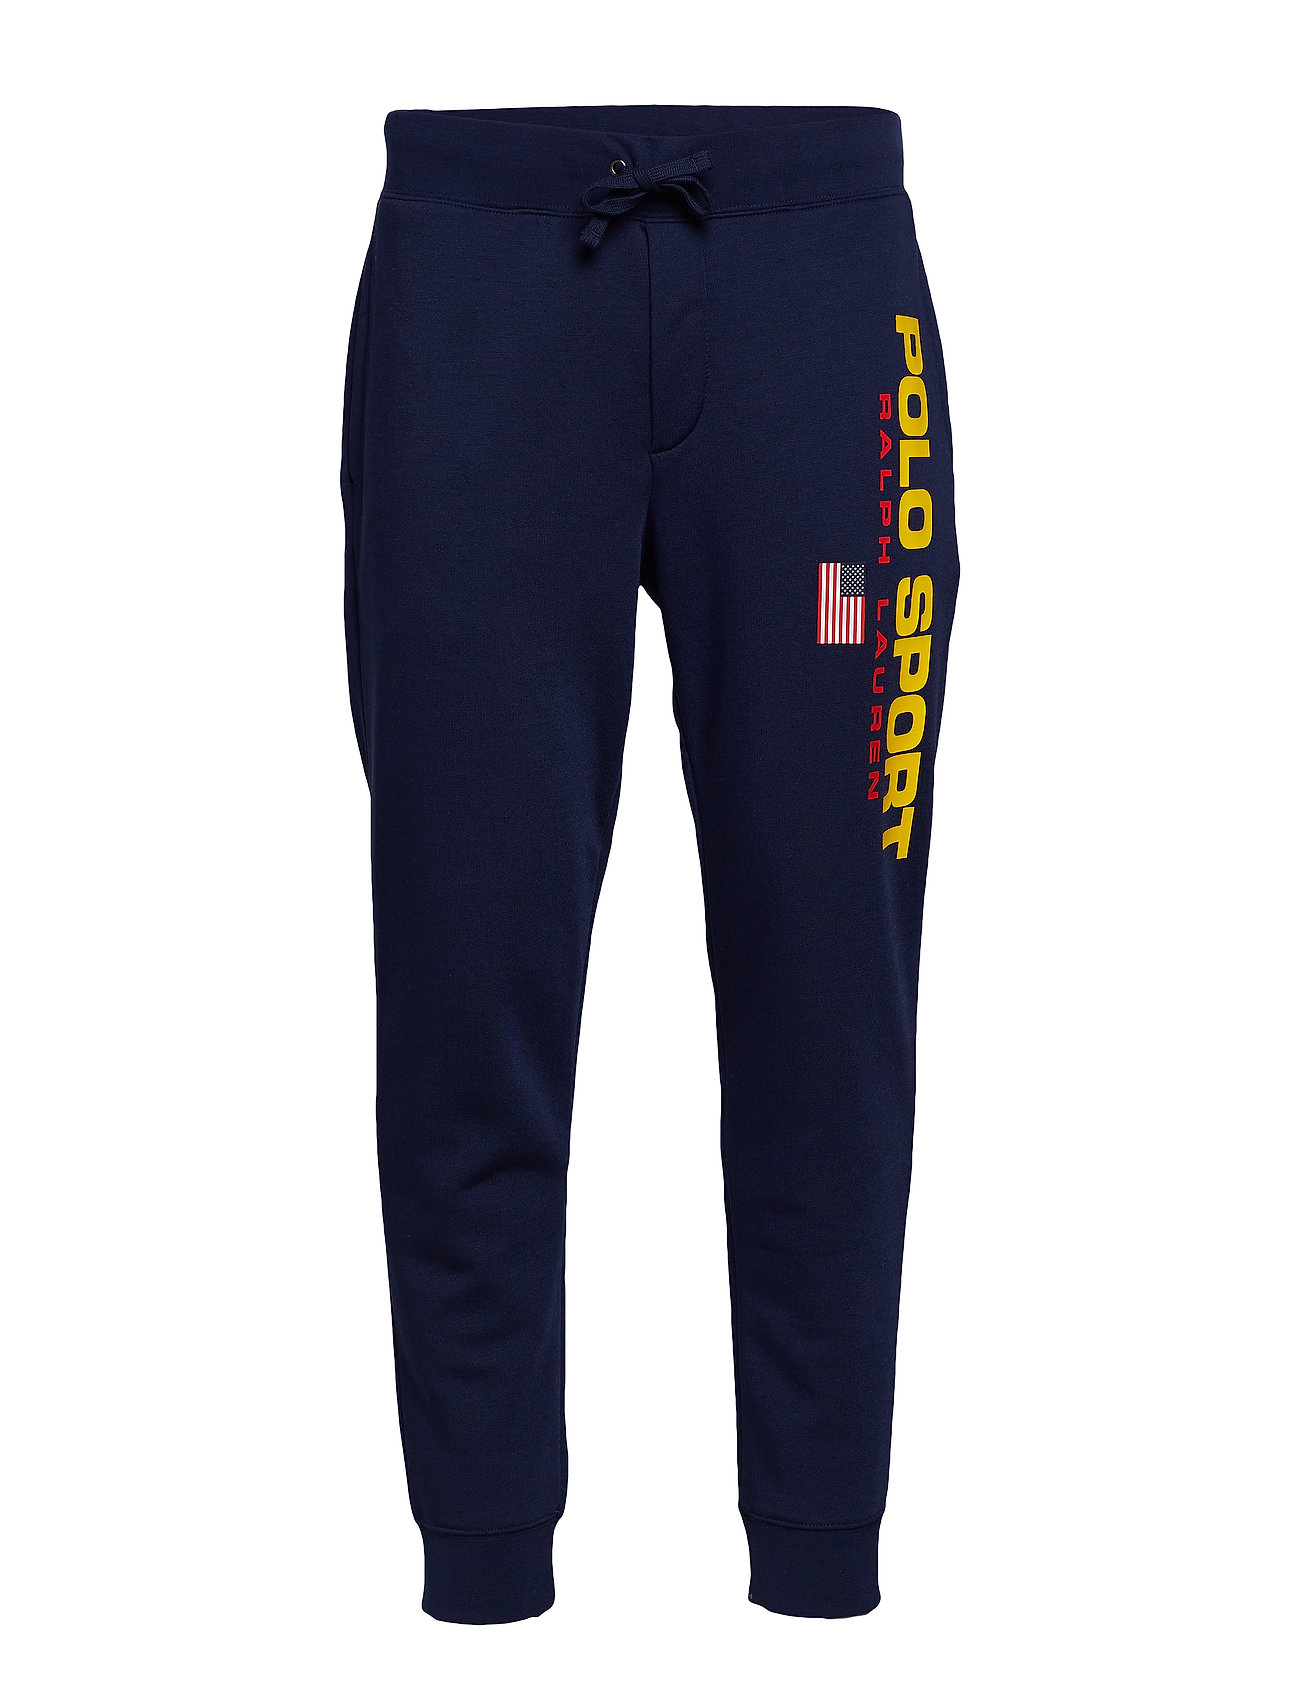 Polo Ralph Lauren PANTM3-ATHLETIC-PANT - CRUISE NAVY